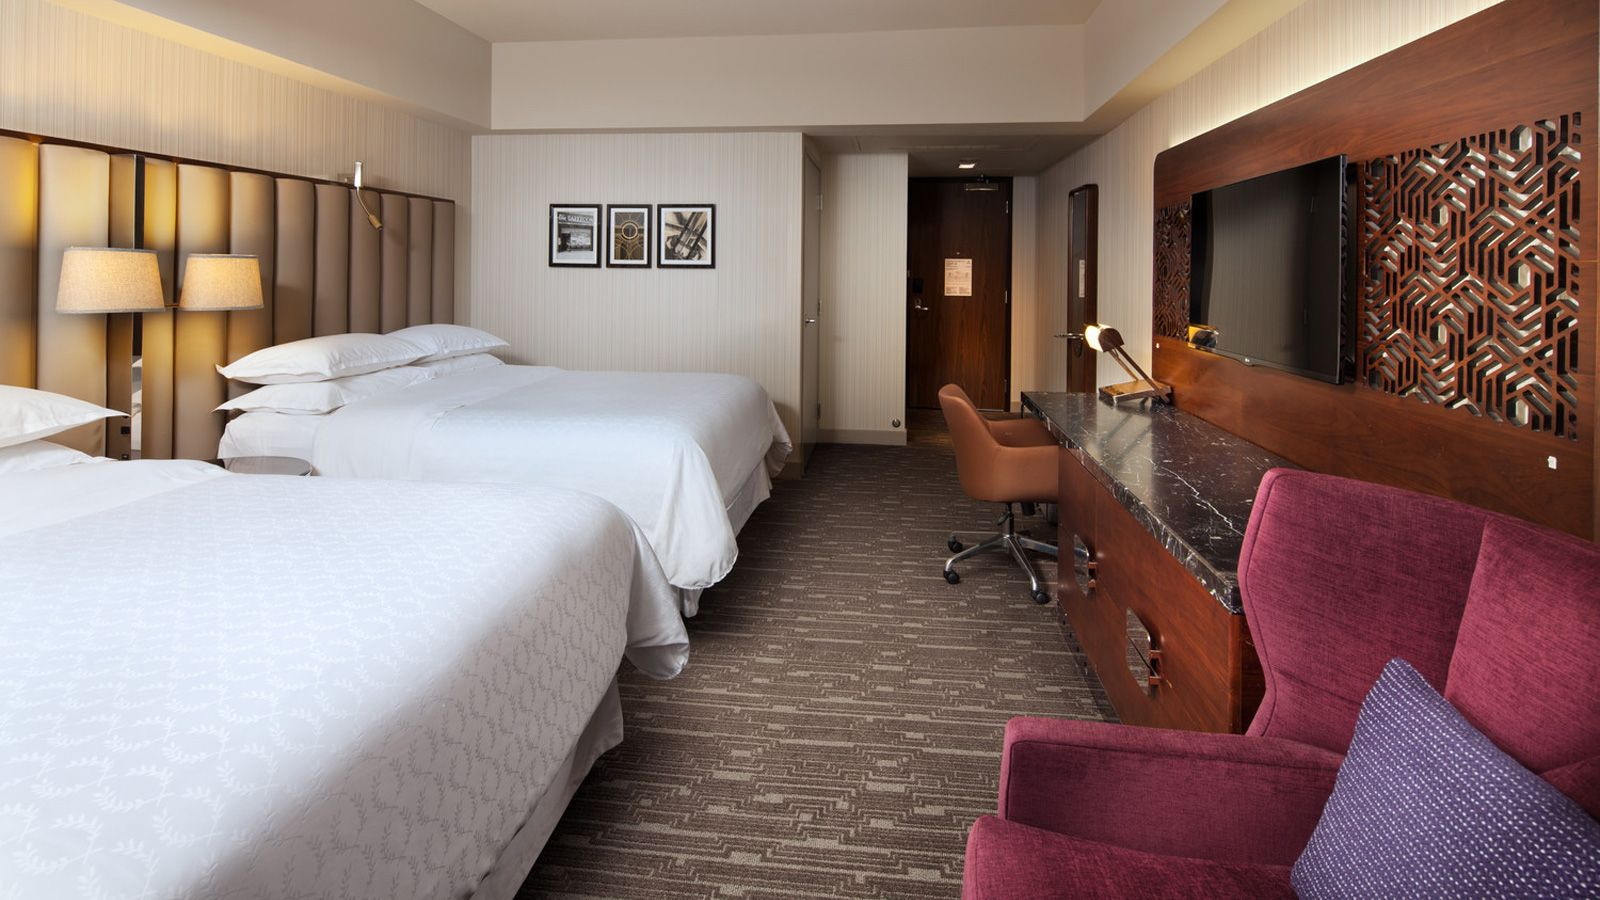 Sheraton Grand Los Angeles - Deluxe Guestroom